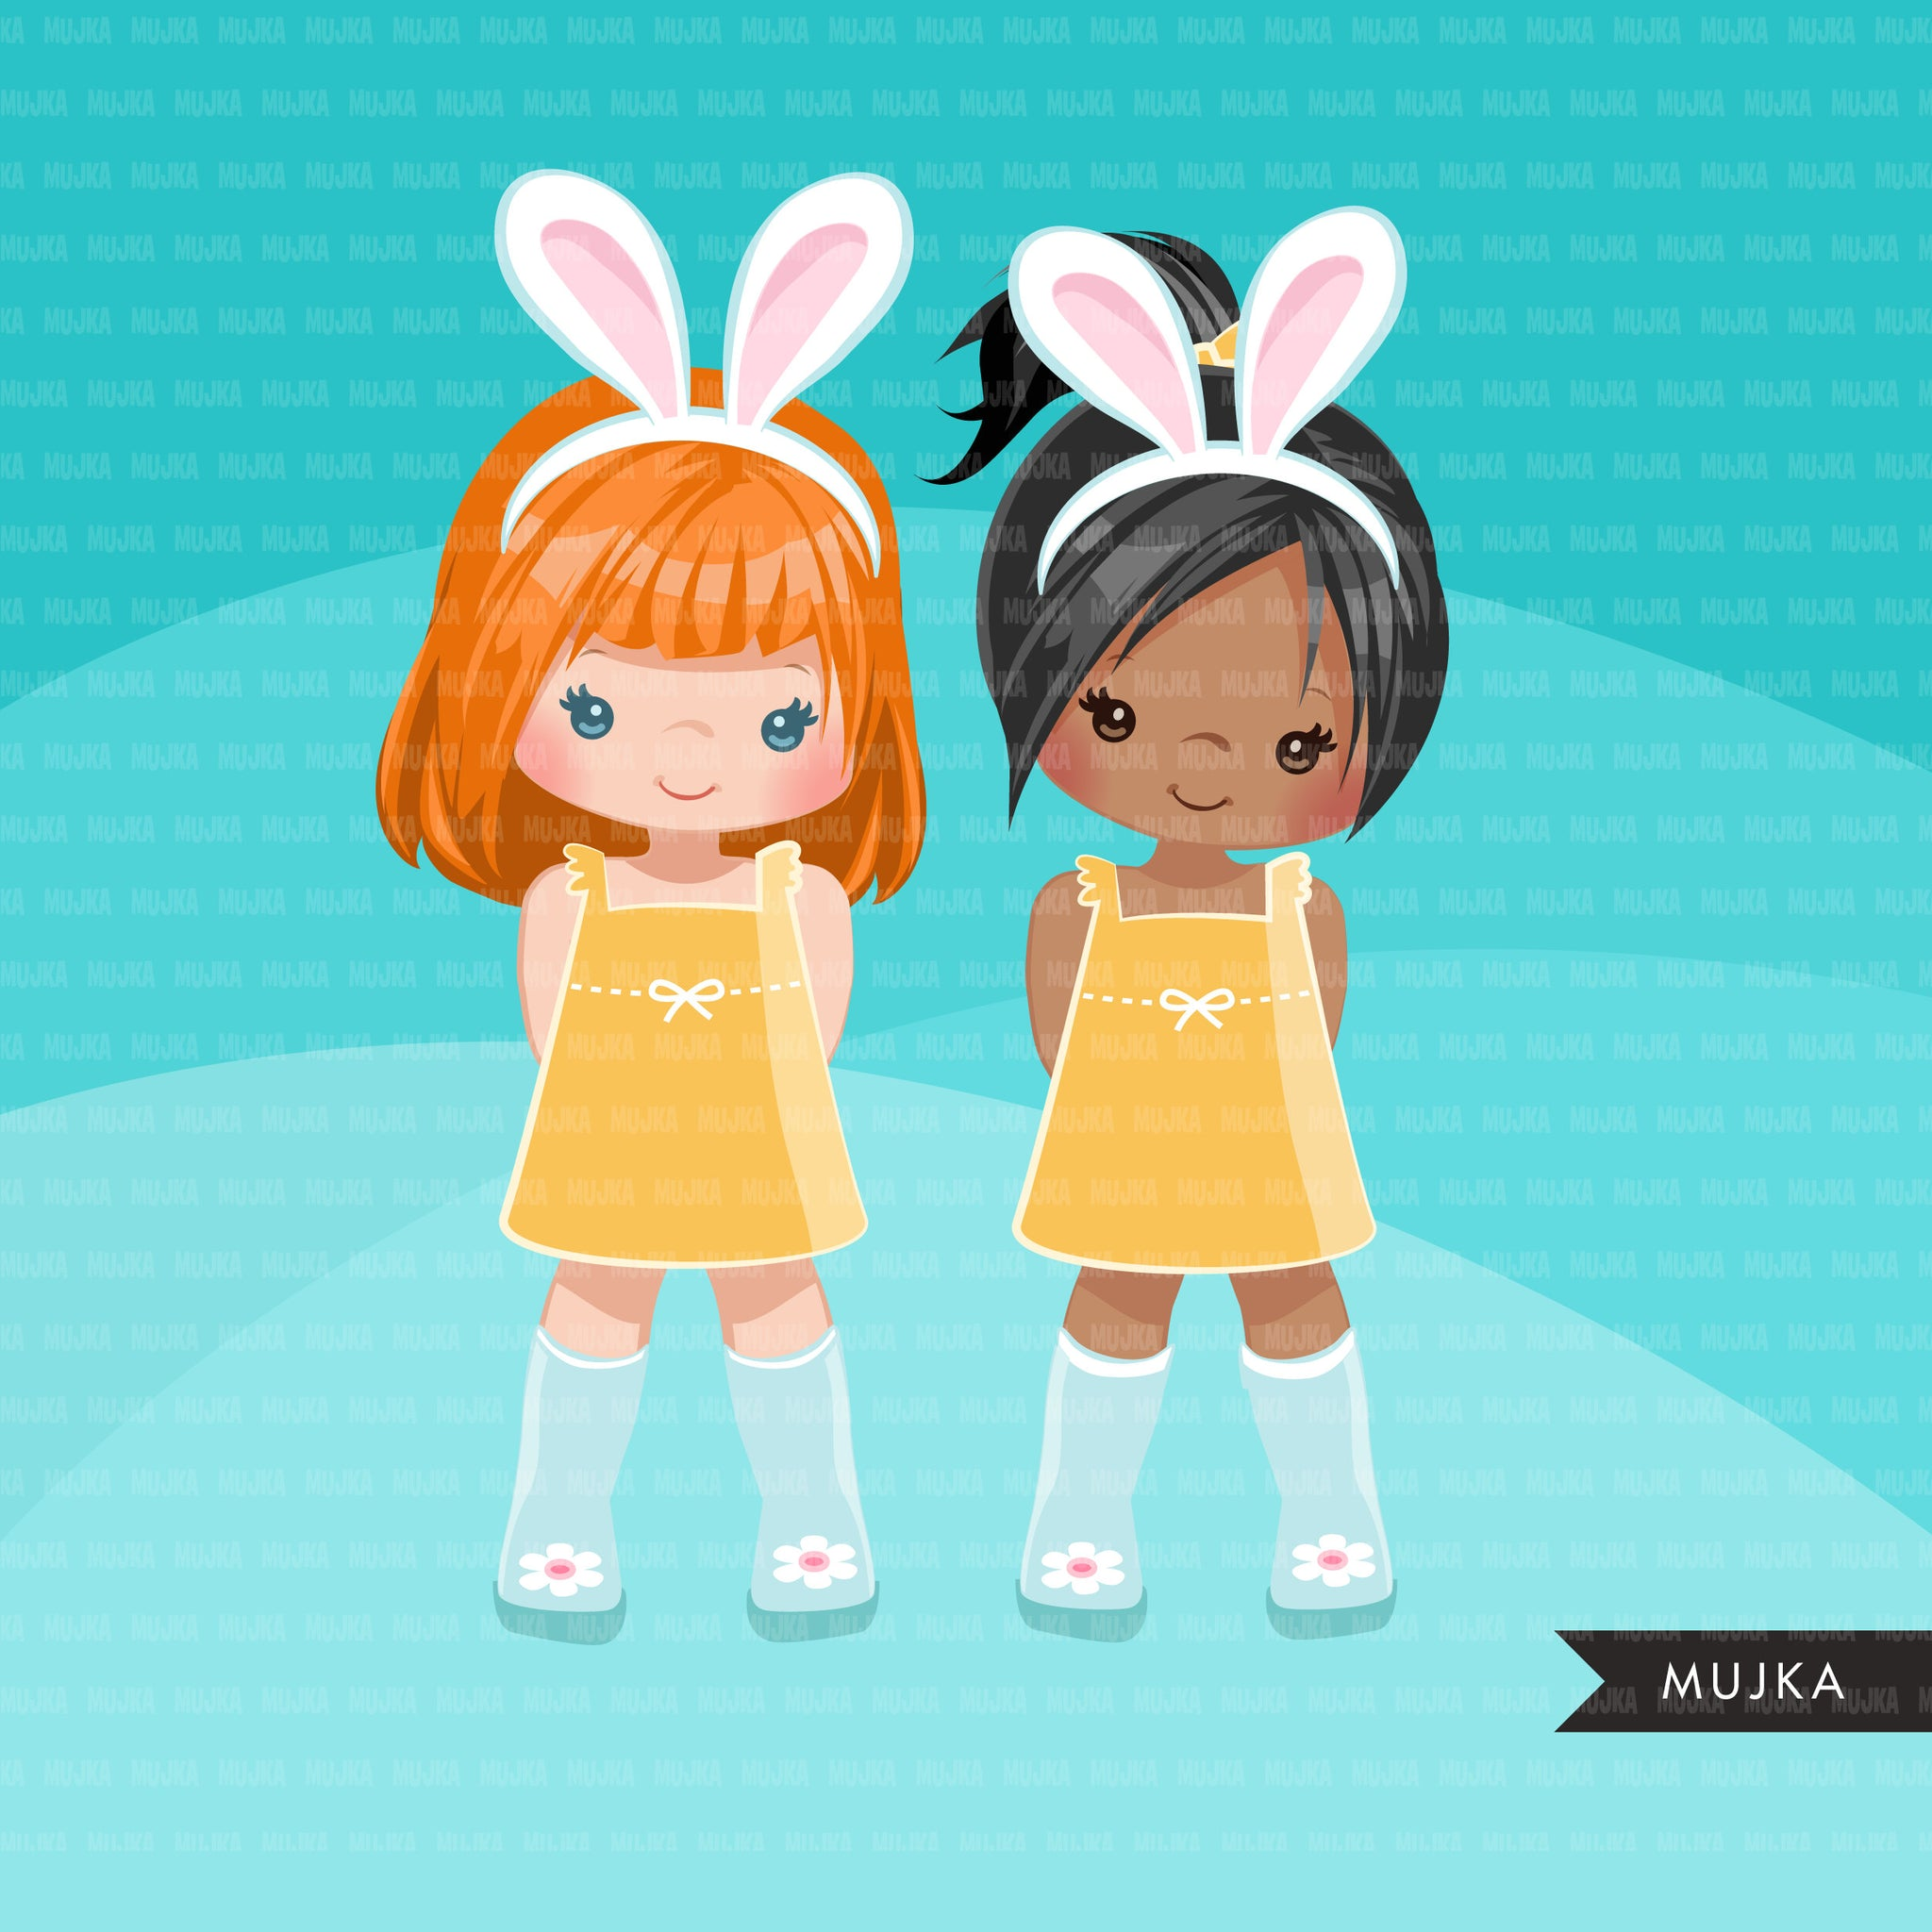 Easter clipart bundle, Best friends designs, easter bunny ears, black girl, afro girl, spring graphics